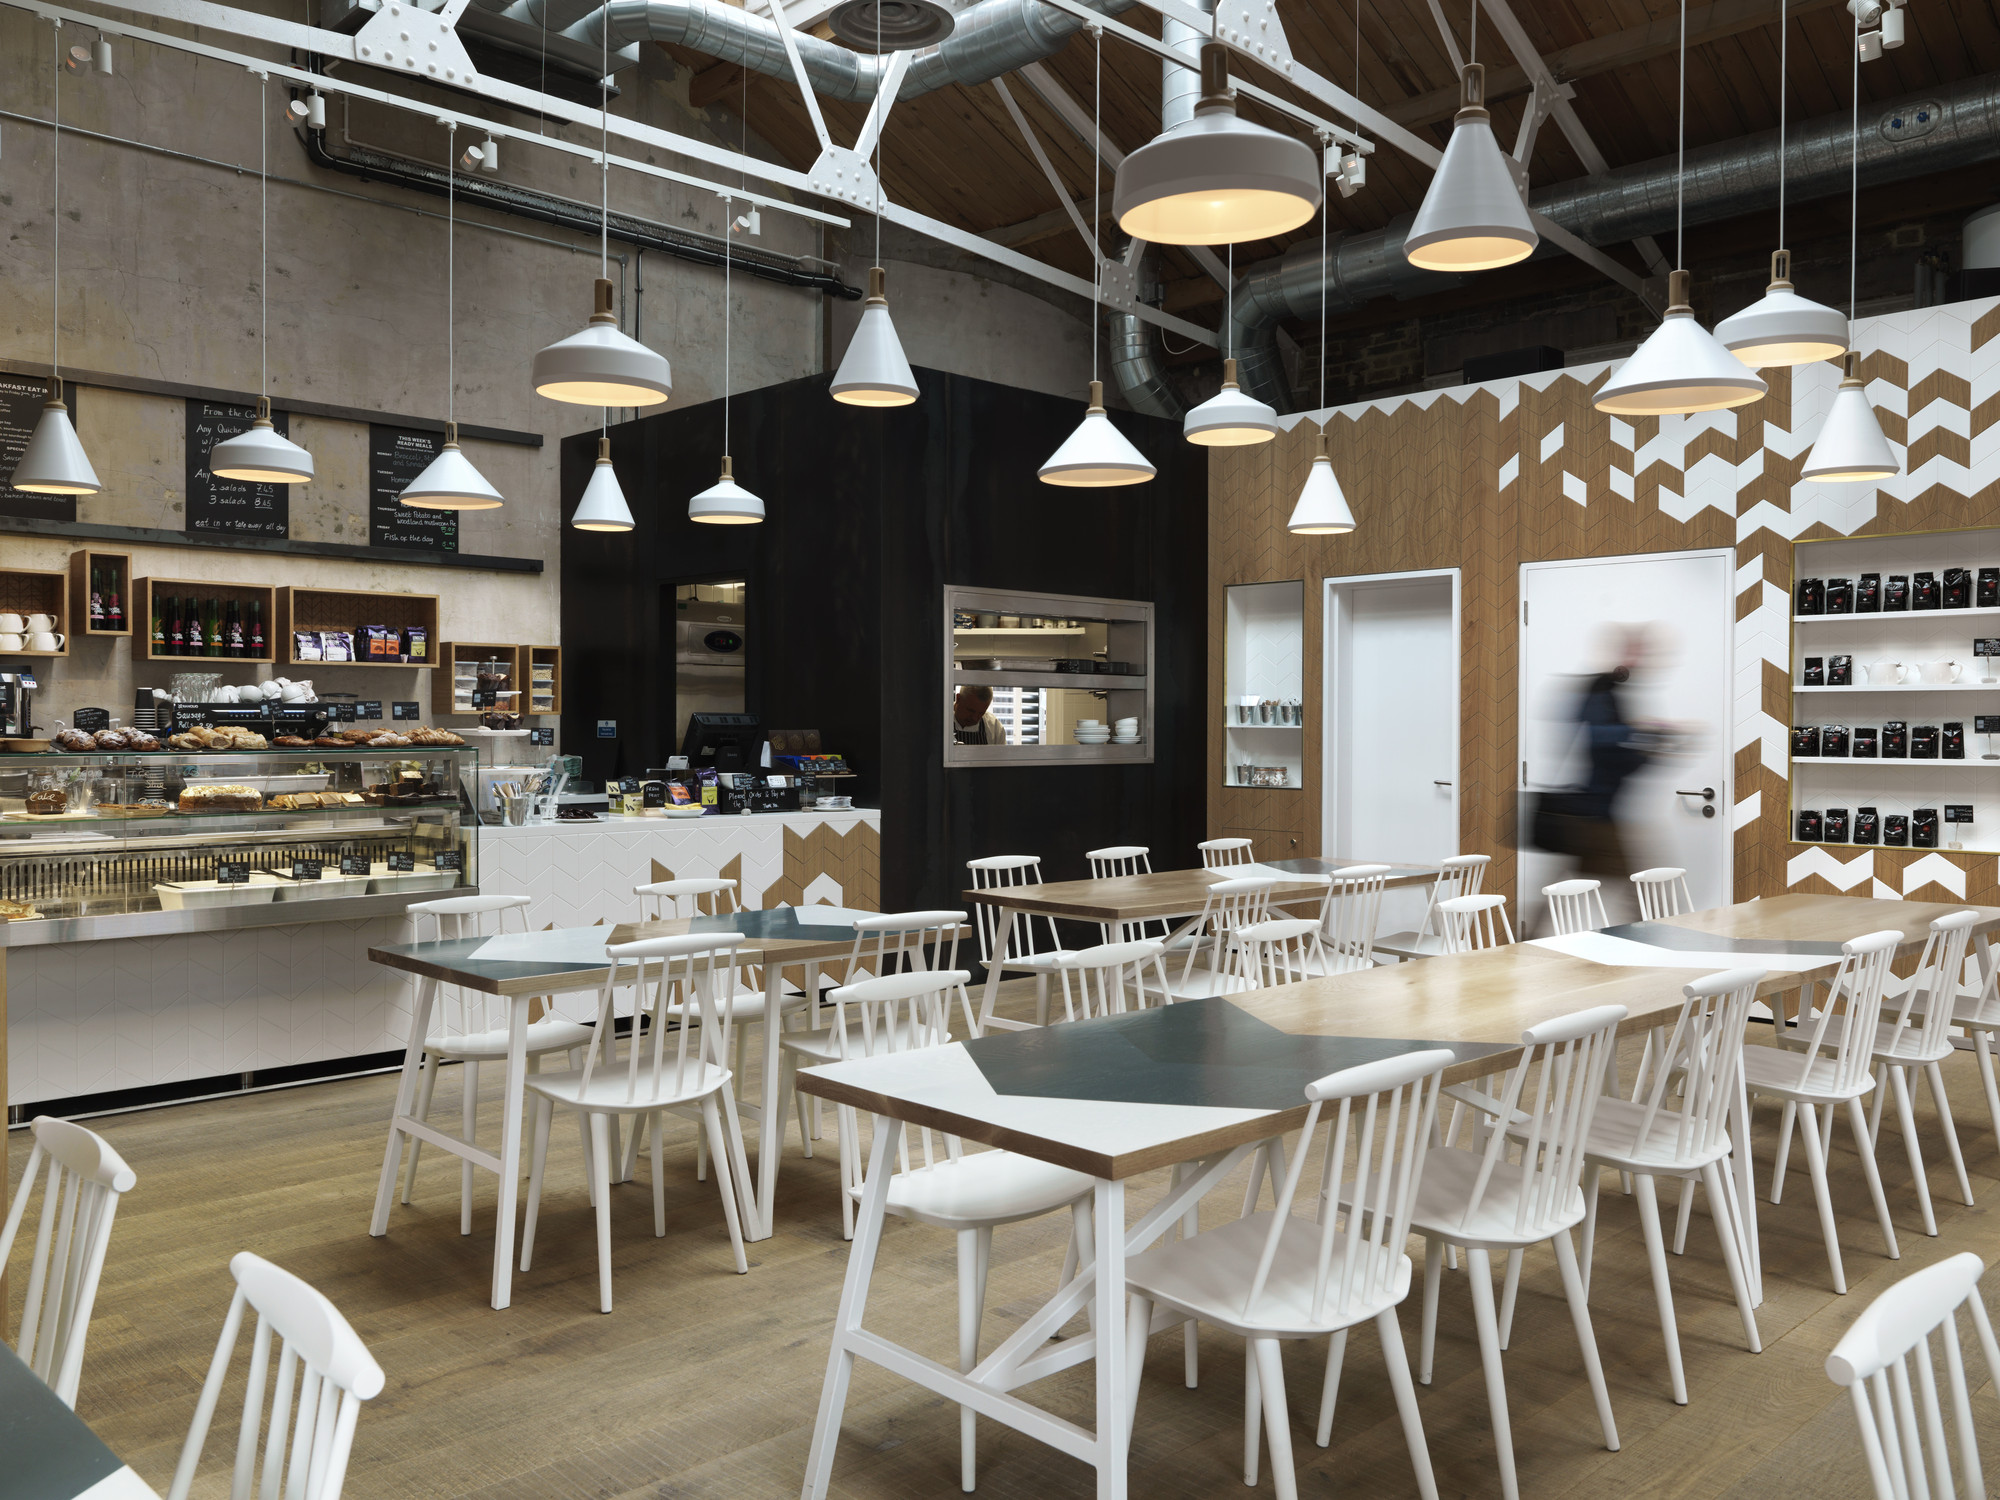 2014 Restaurant amp Bar Design Award Winners ArchDaily